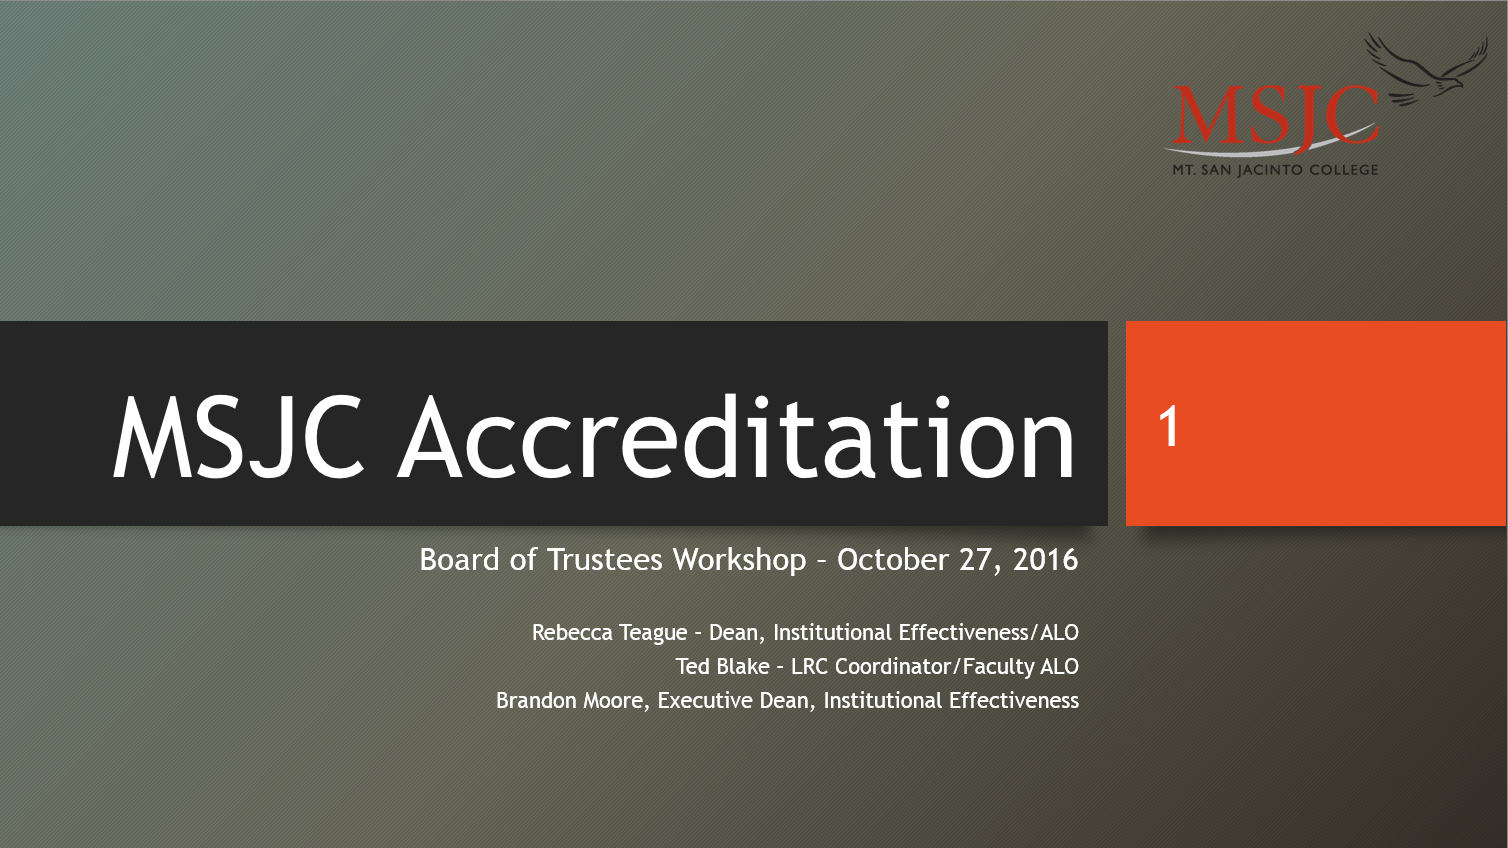 Accreditation Board of Trustees Workshop, October 27, 2016